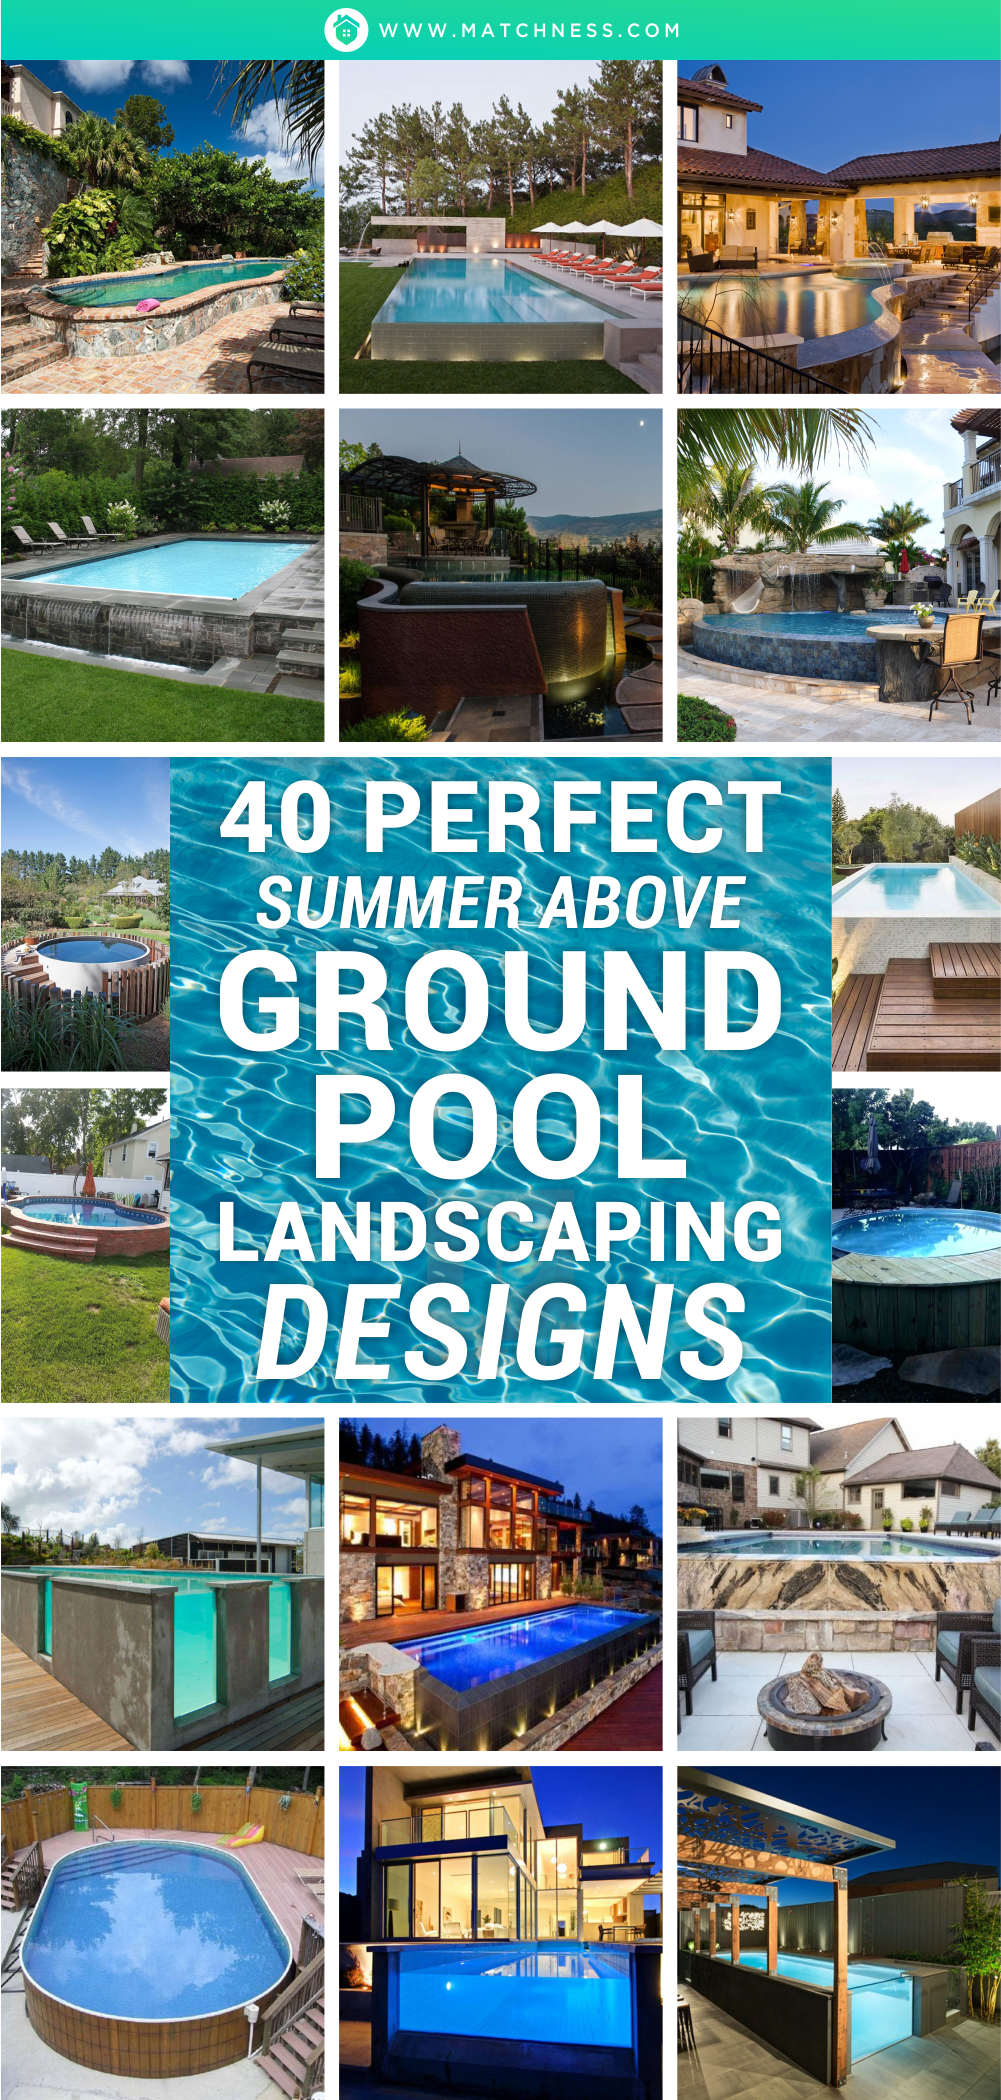 40-perfect-summer-above-ground-pool-landscaping-designs1